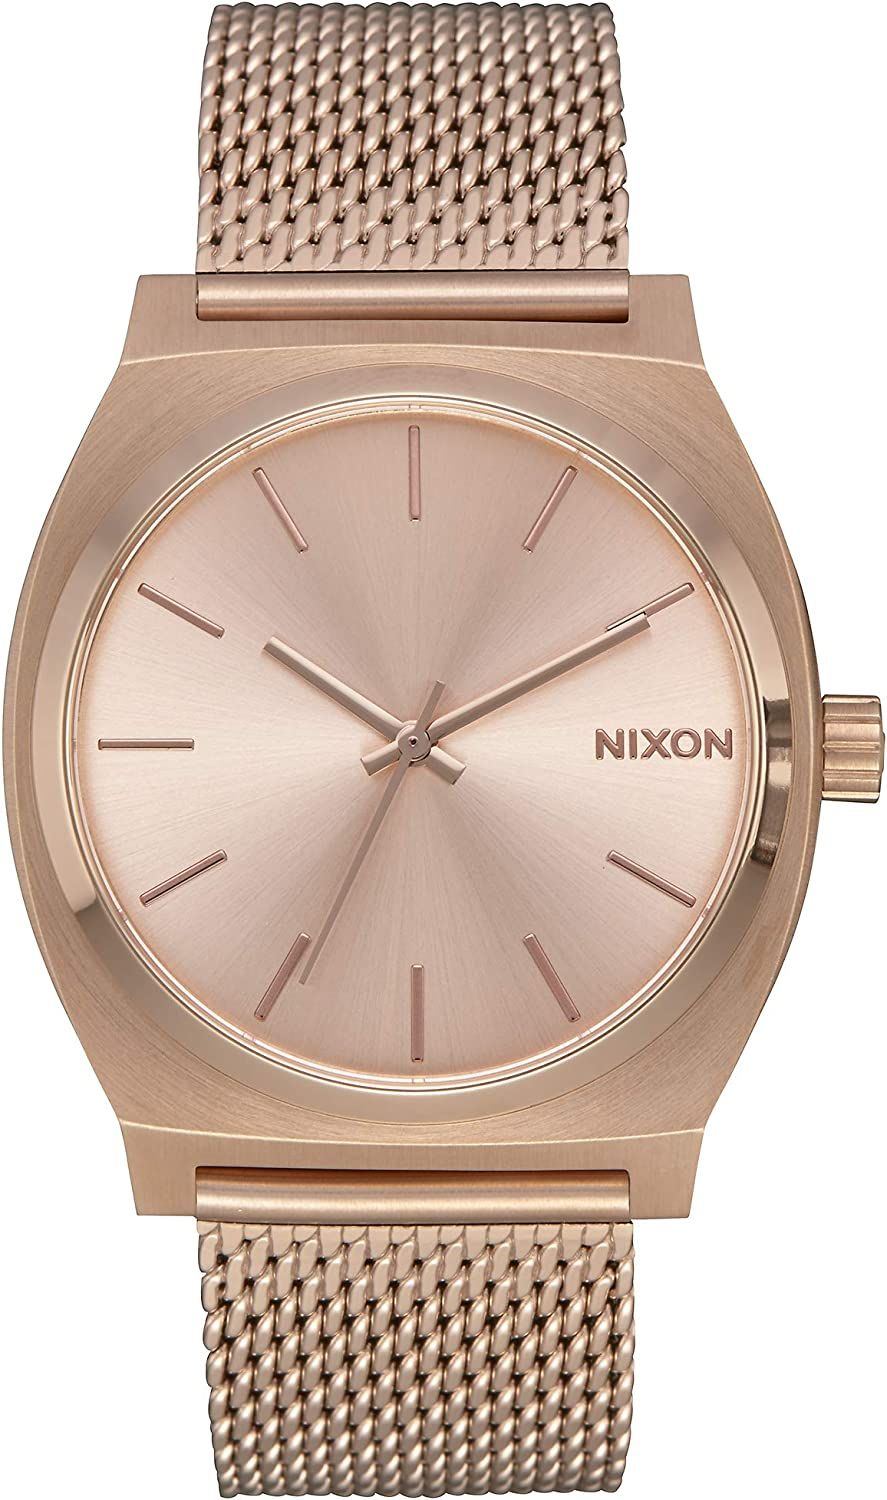 Nixon Time Teller Milanese -Spring 2018- All Rose Gold